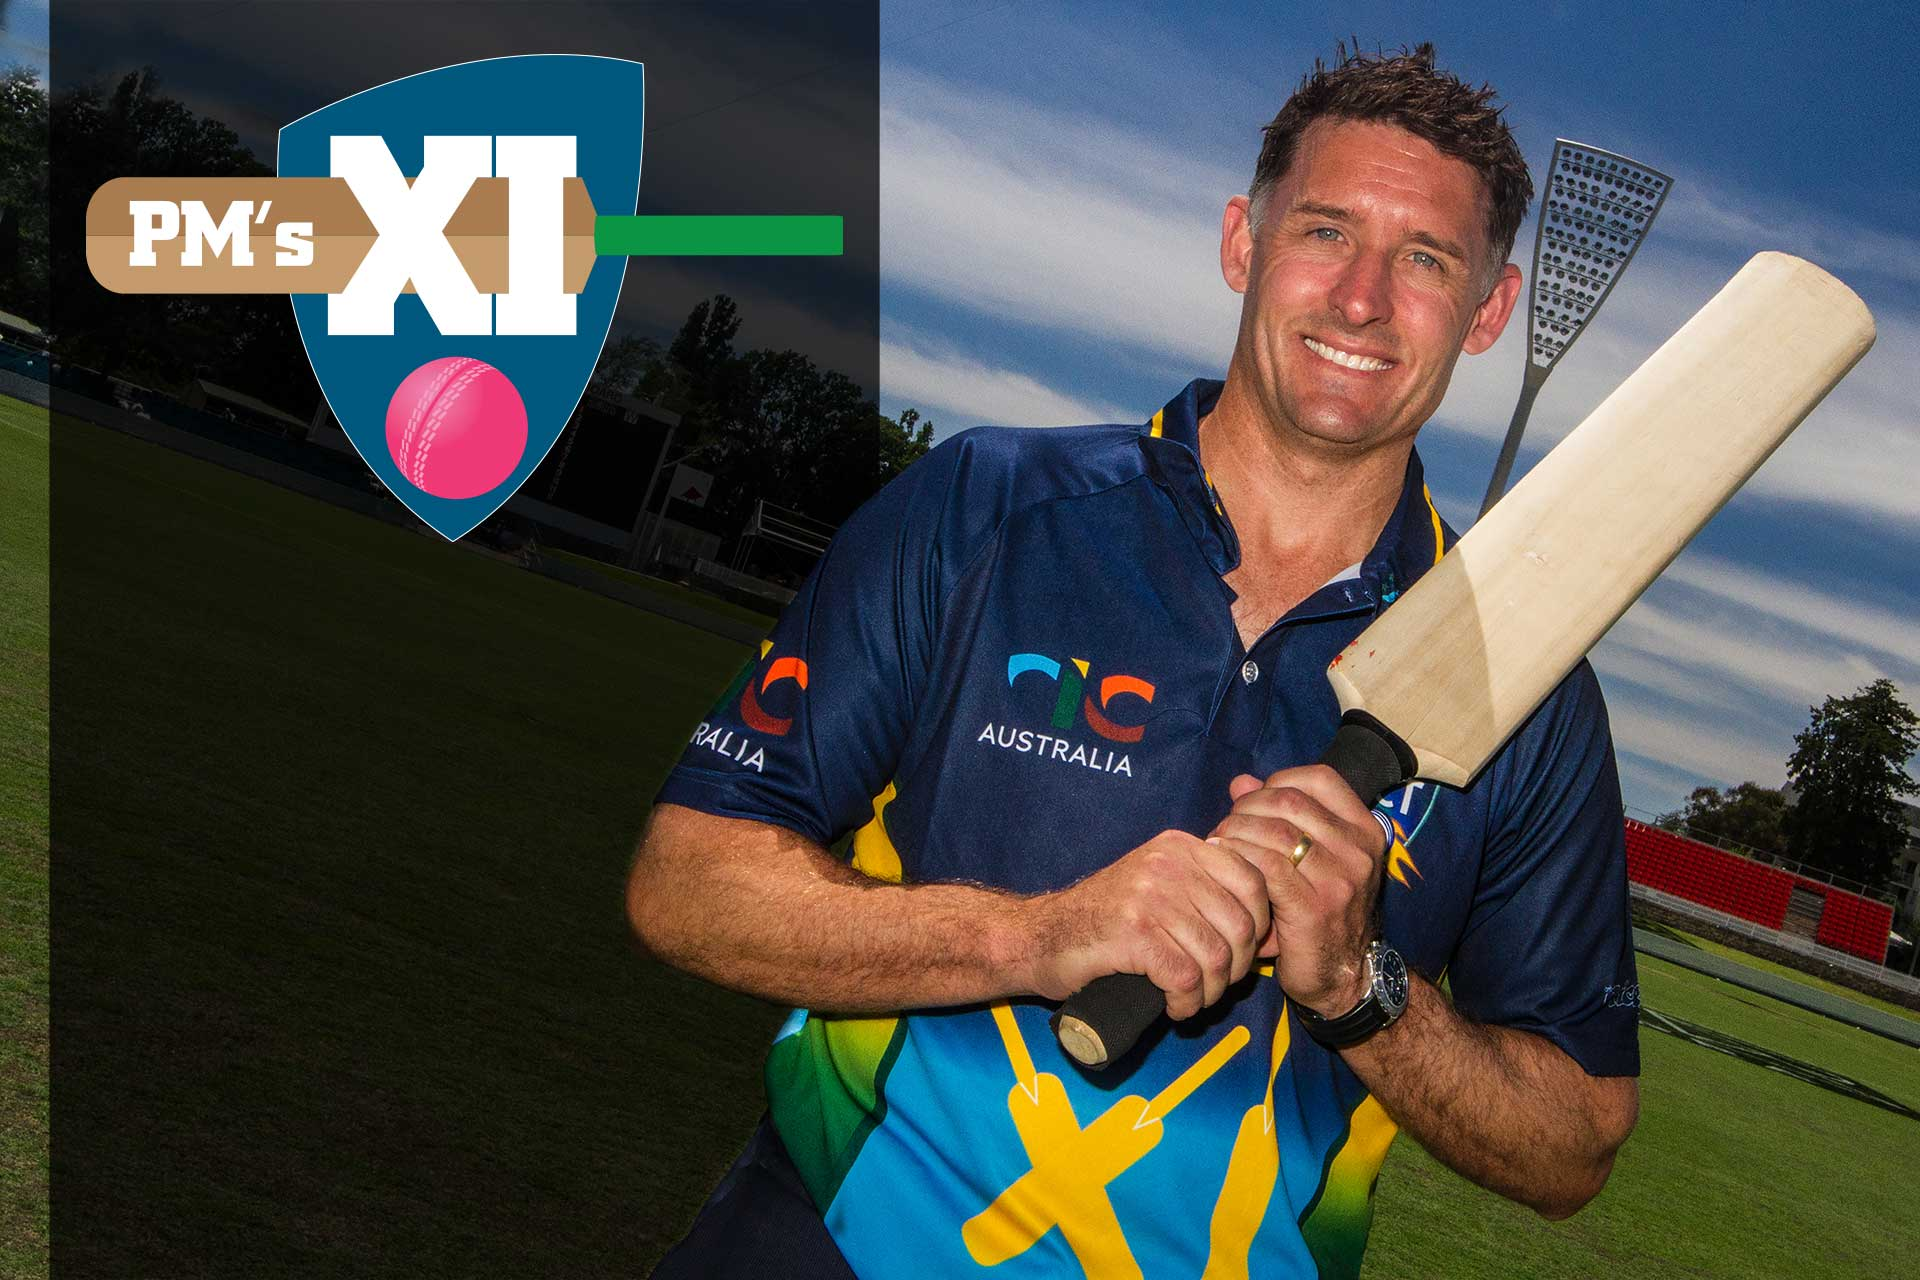 Mike Hussey to captain PM's XI with pink ball